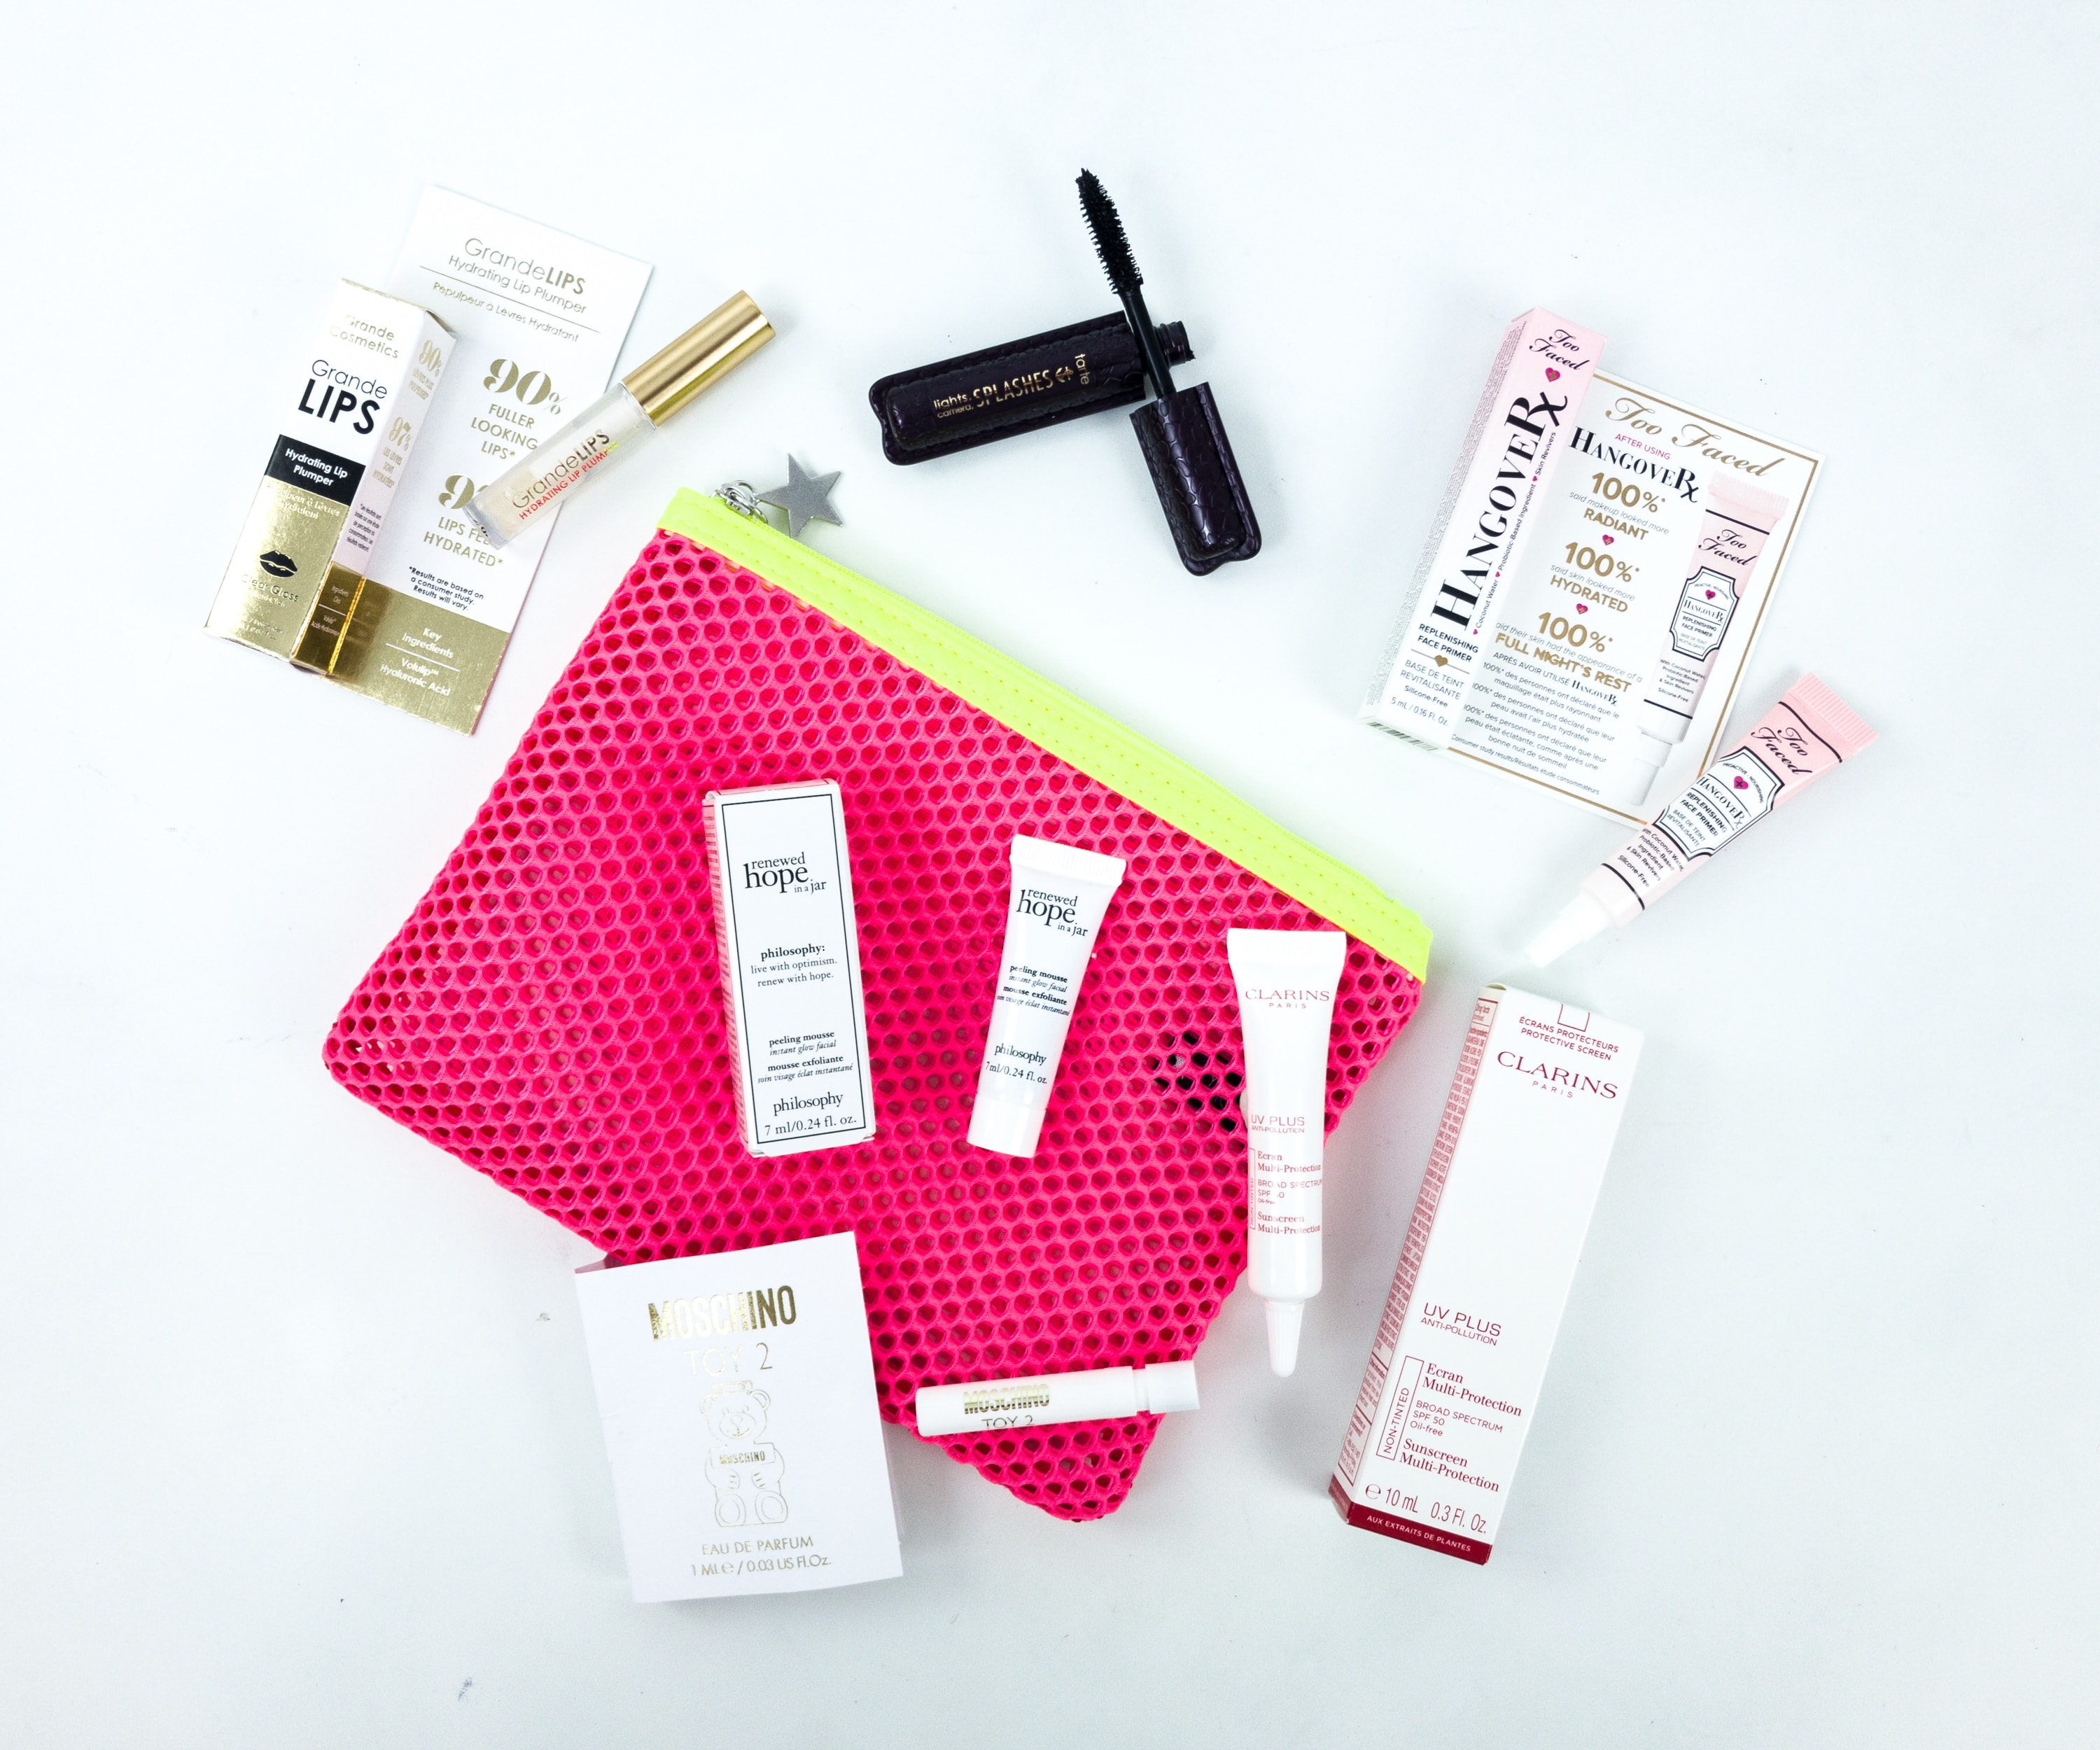 Macy's Beauty Box July 2019 Subscription Box Review